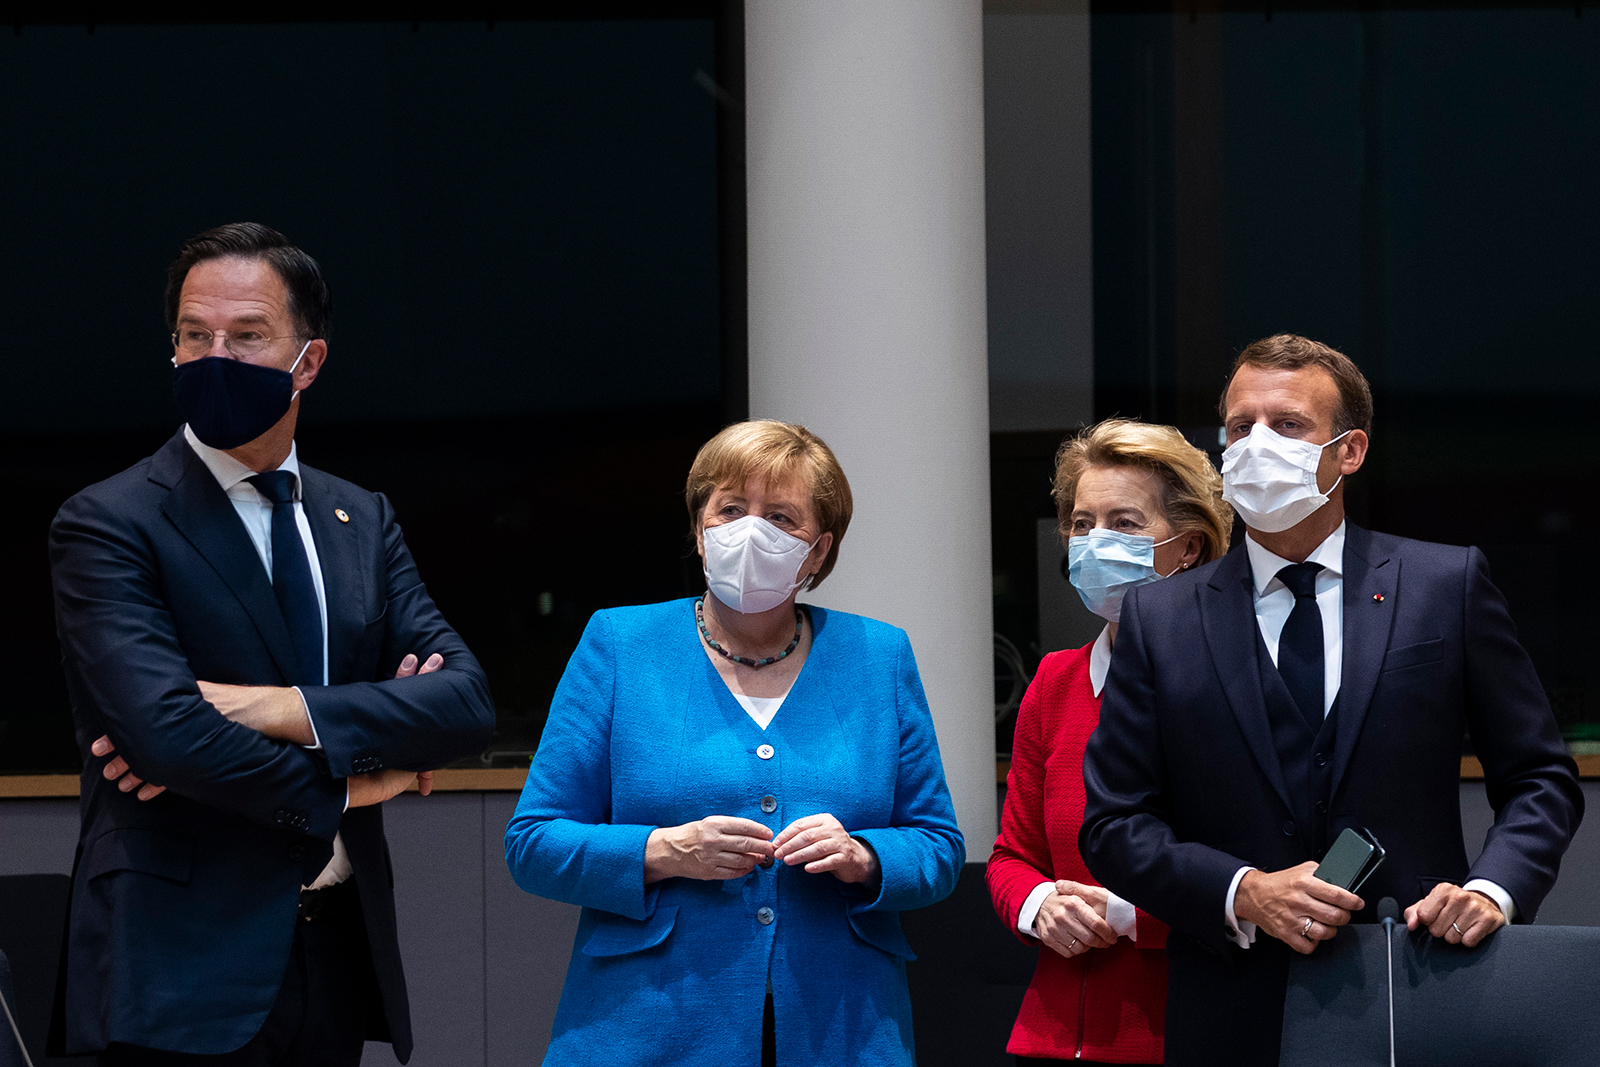 Netherlands' Prime Minister Mark Rutte (left) looks on next to Germany's Chancellor Angela Merkel (2nd from left), President of the European Commission Ursula von der Leyen (2nd from right) and France's President Emmanuel Macron (right) prior the start of the European Council building in Brussels, on July 18.